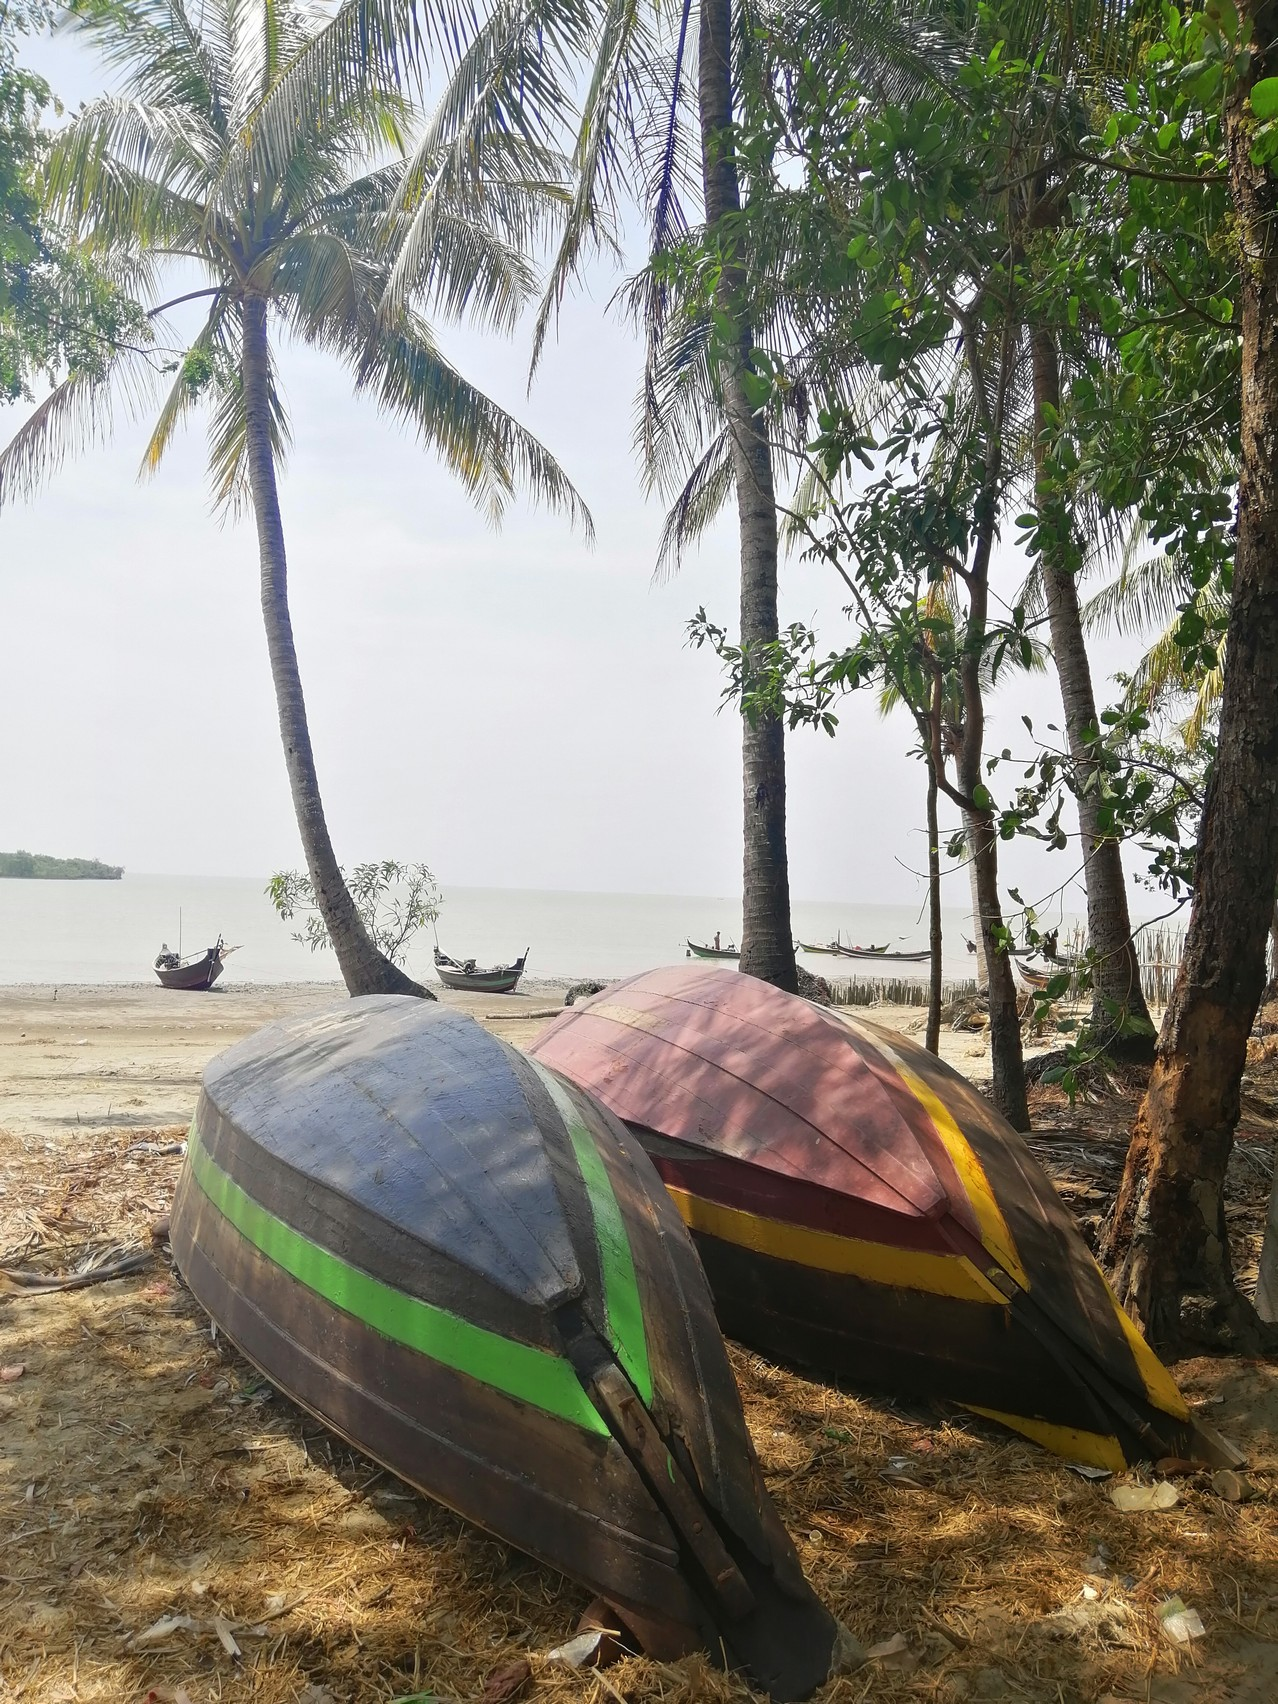 Closest Beach to Yangon (Day Tour)